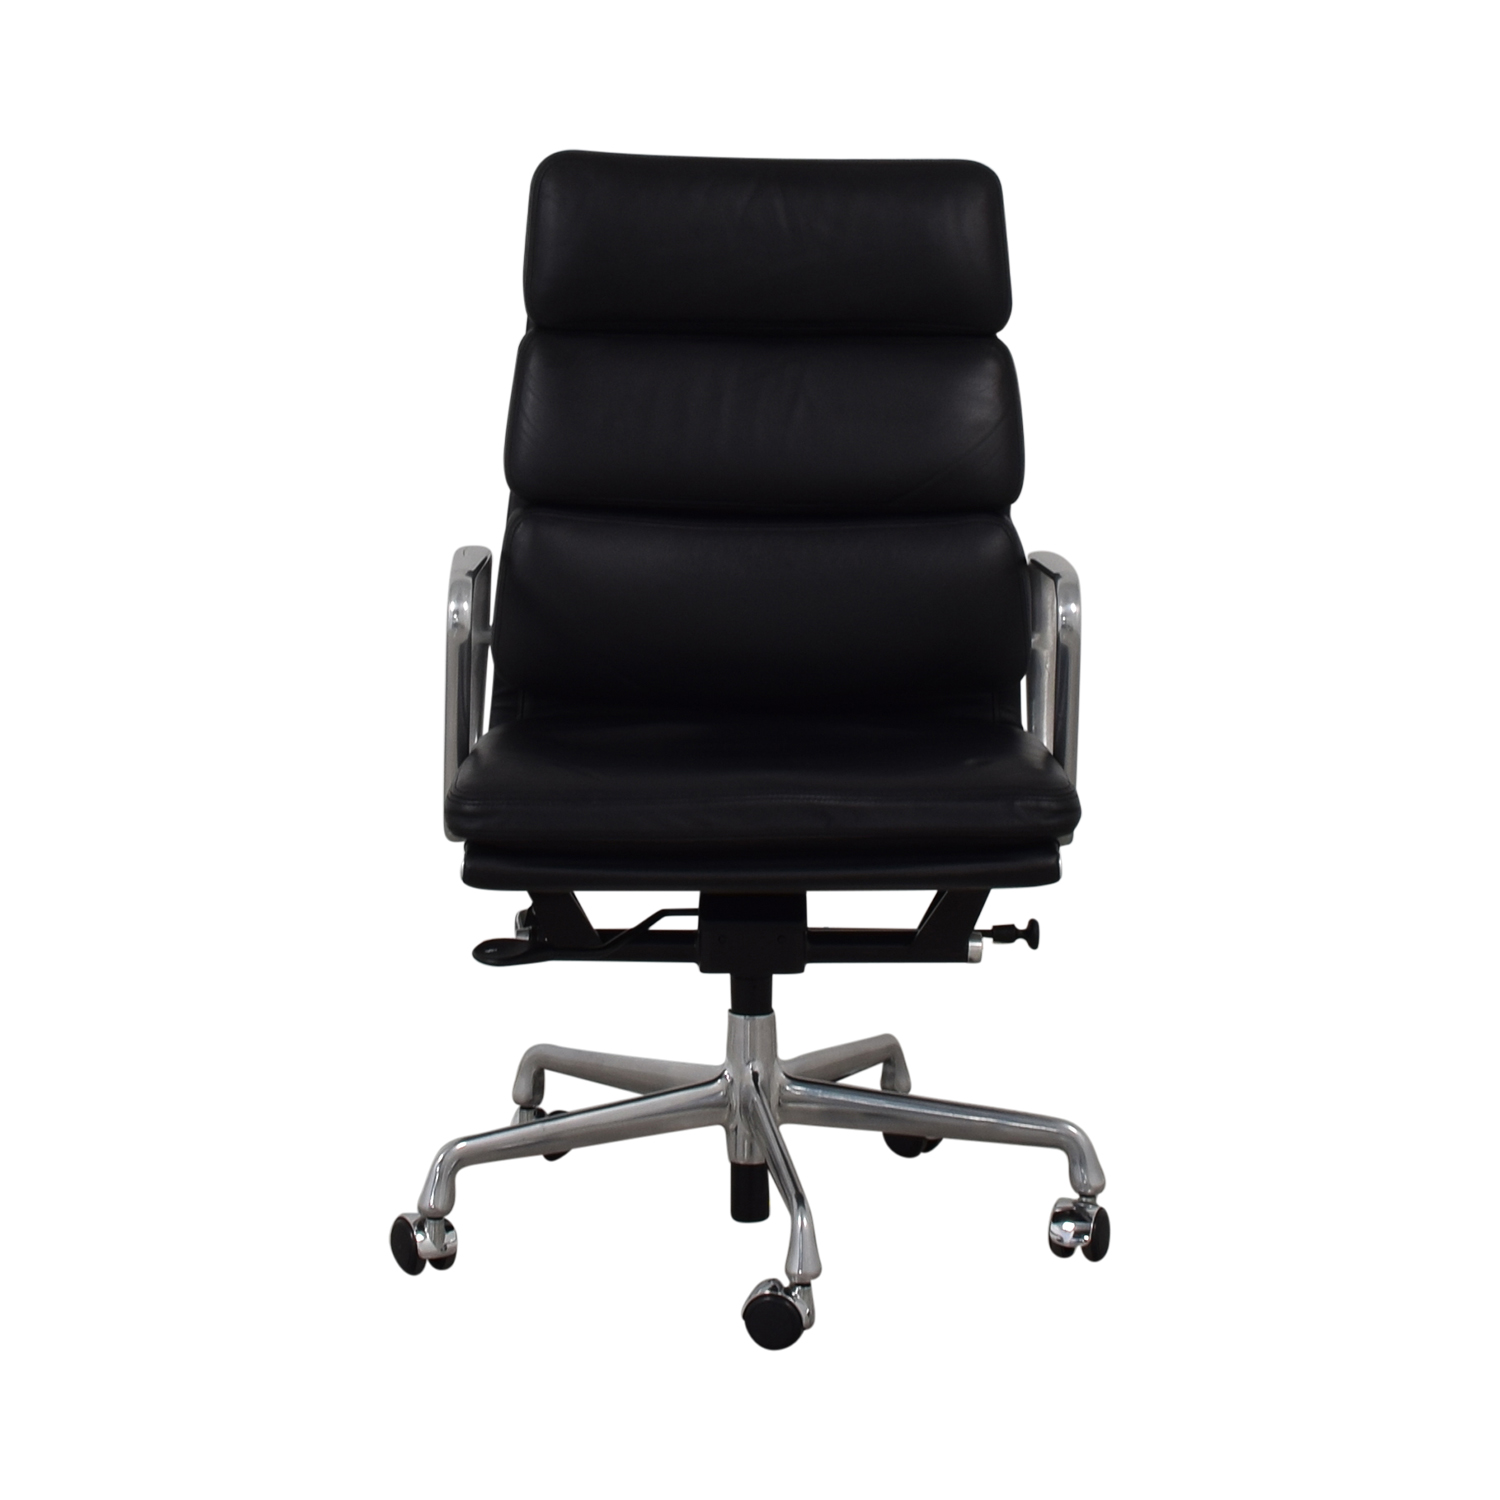 Herman Miller Herman Miiller Eames Softpad Executive Chair Chairs